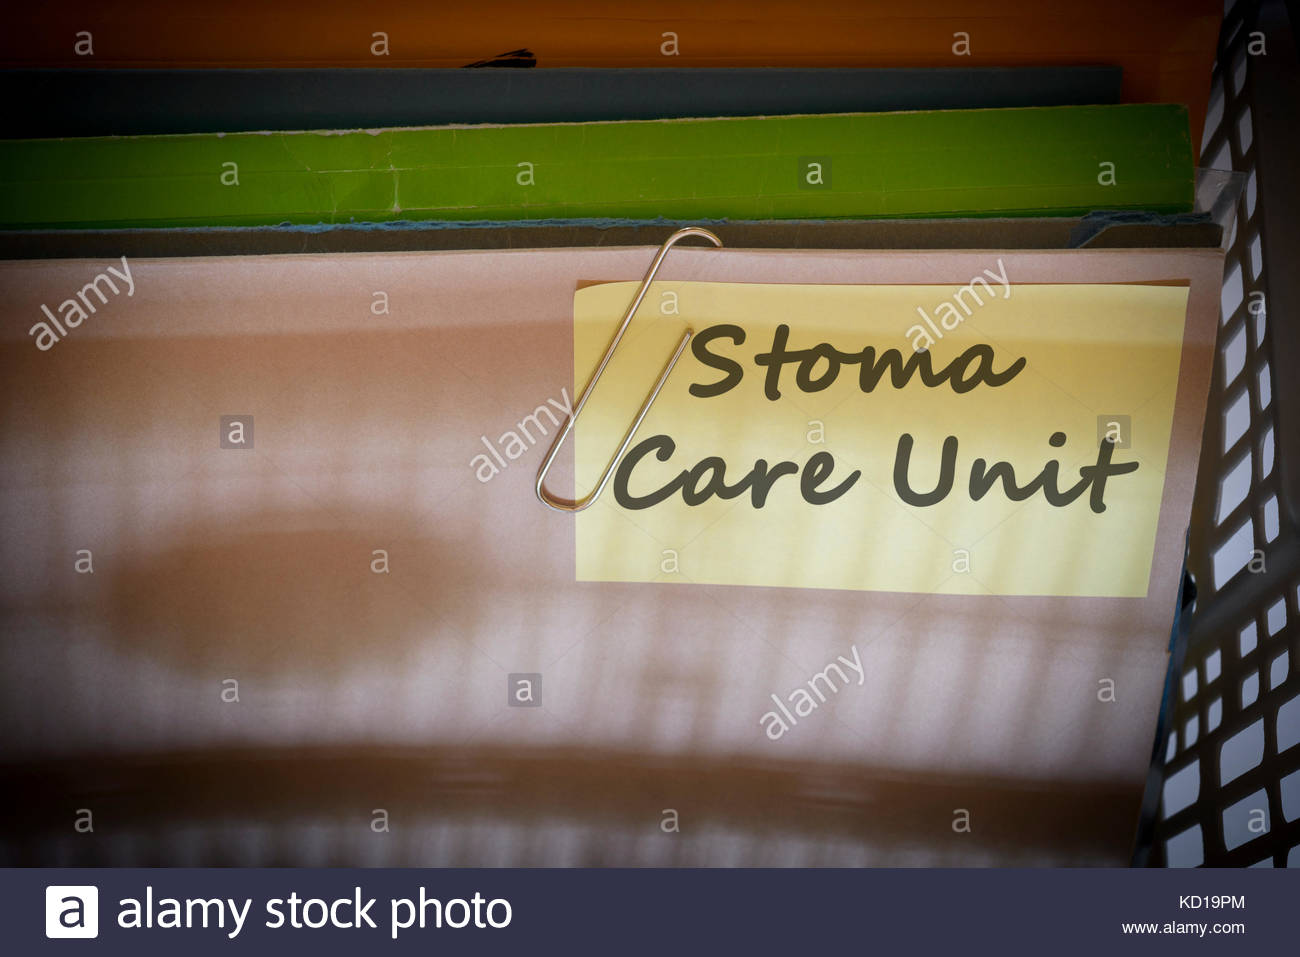 Stoma Care Unit written on document folder, Dorset, England. - Stock Image